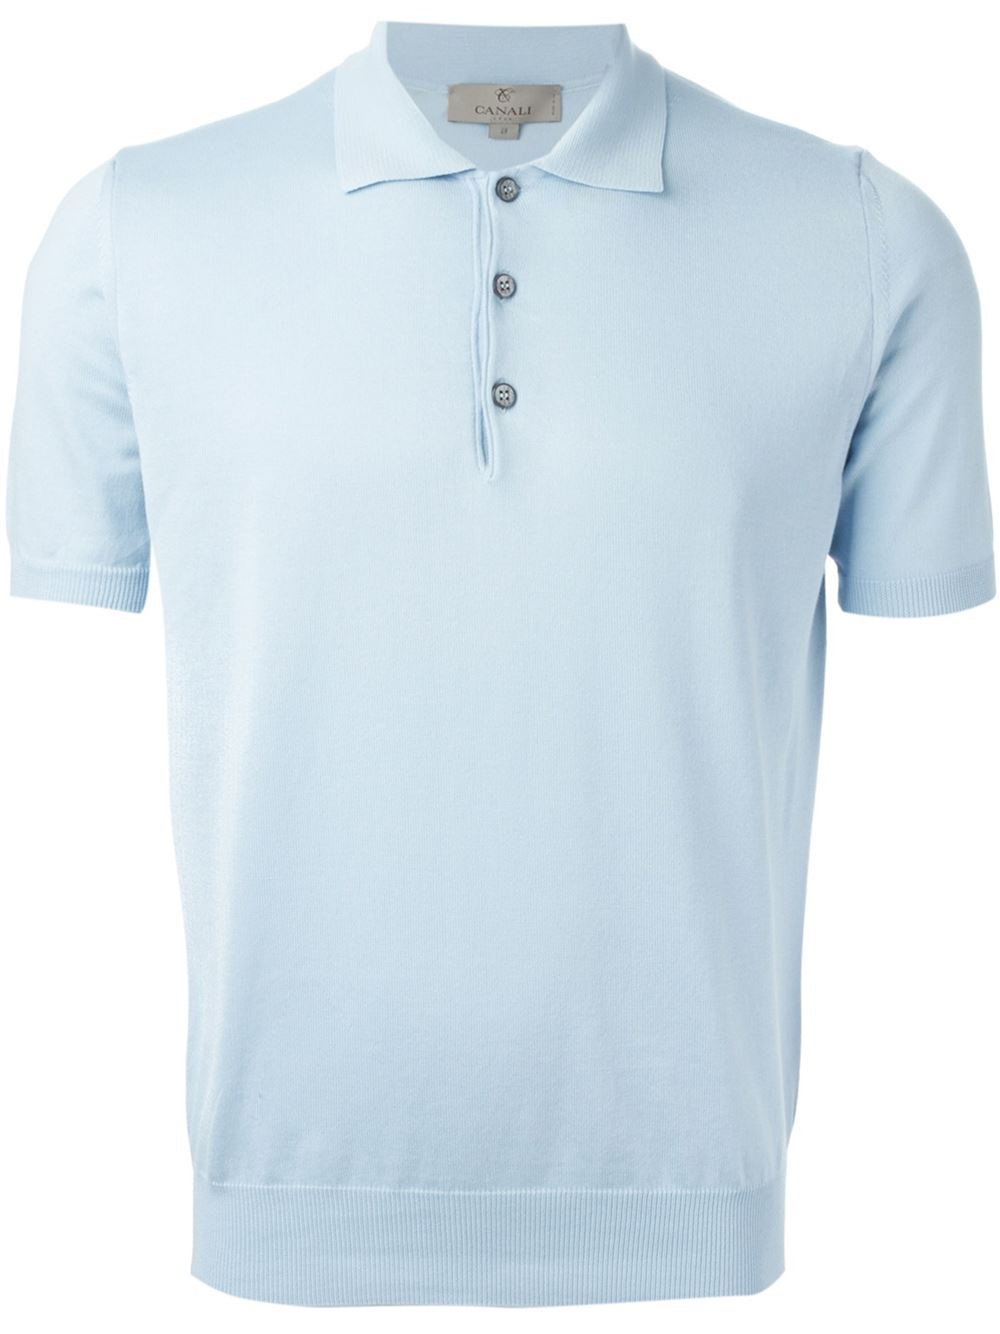 Lyst Canali Knitted Polo Shirt In Blue For Men